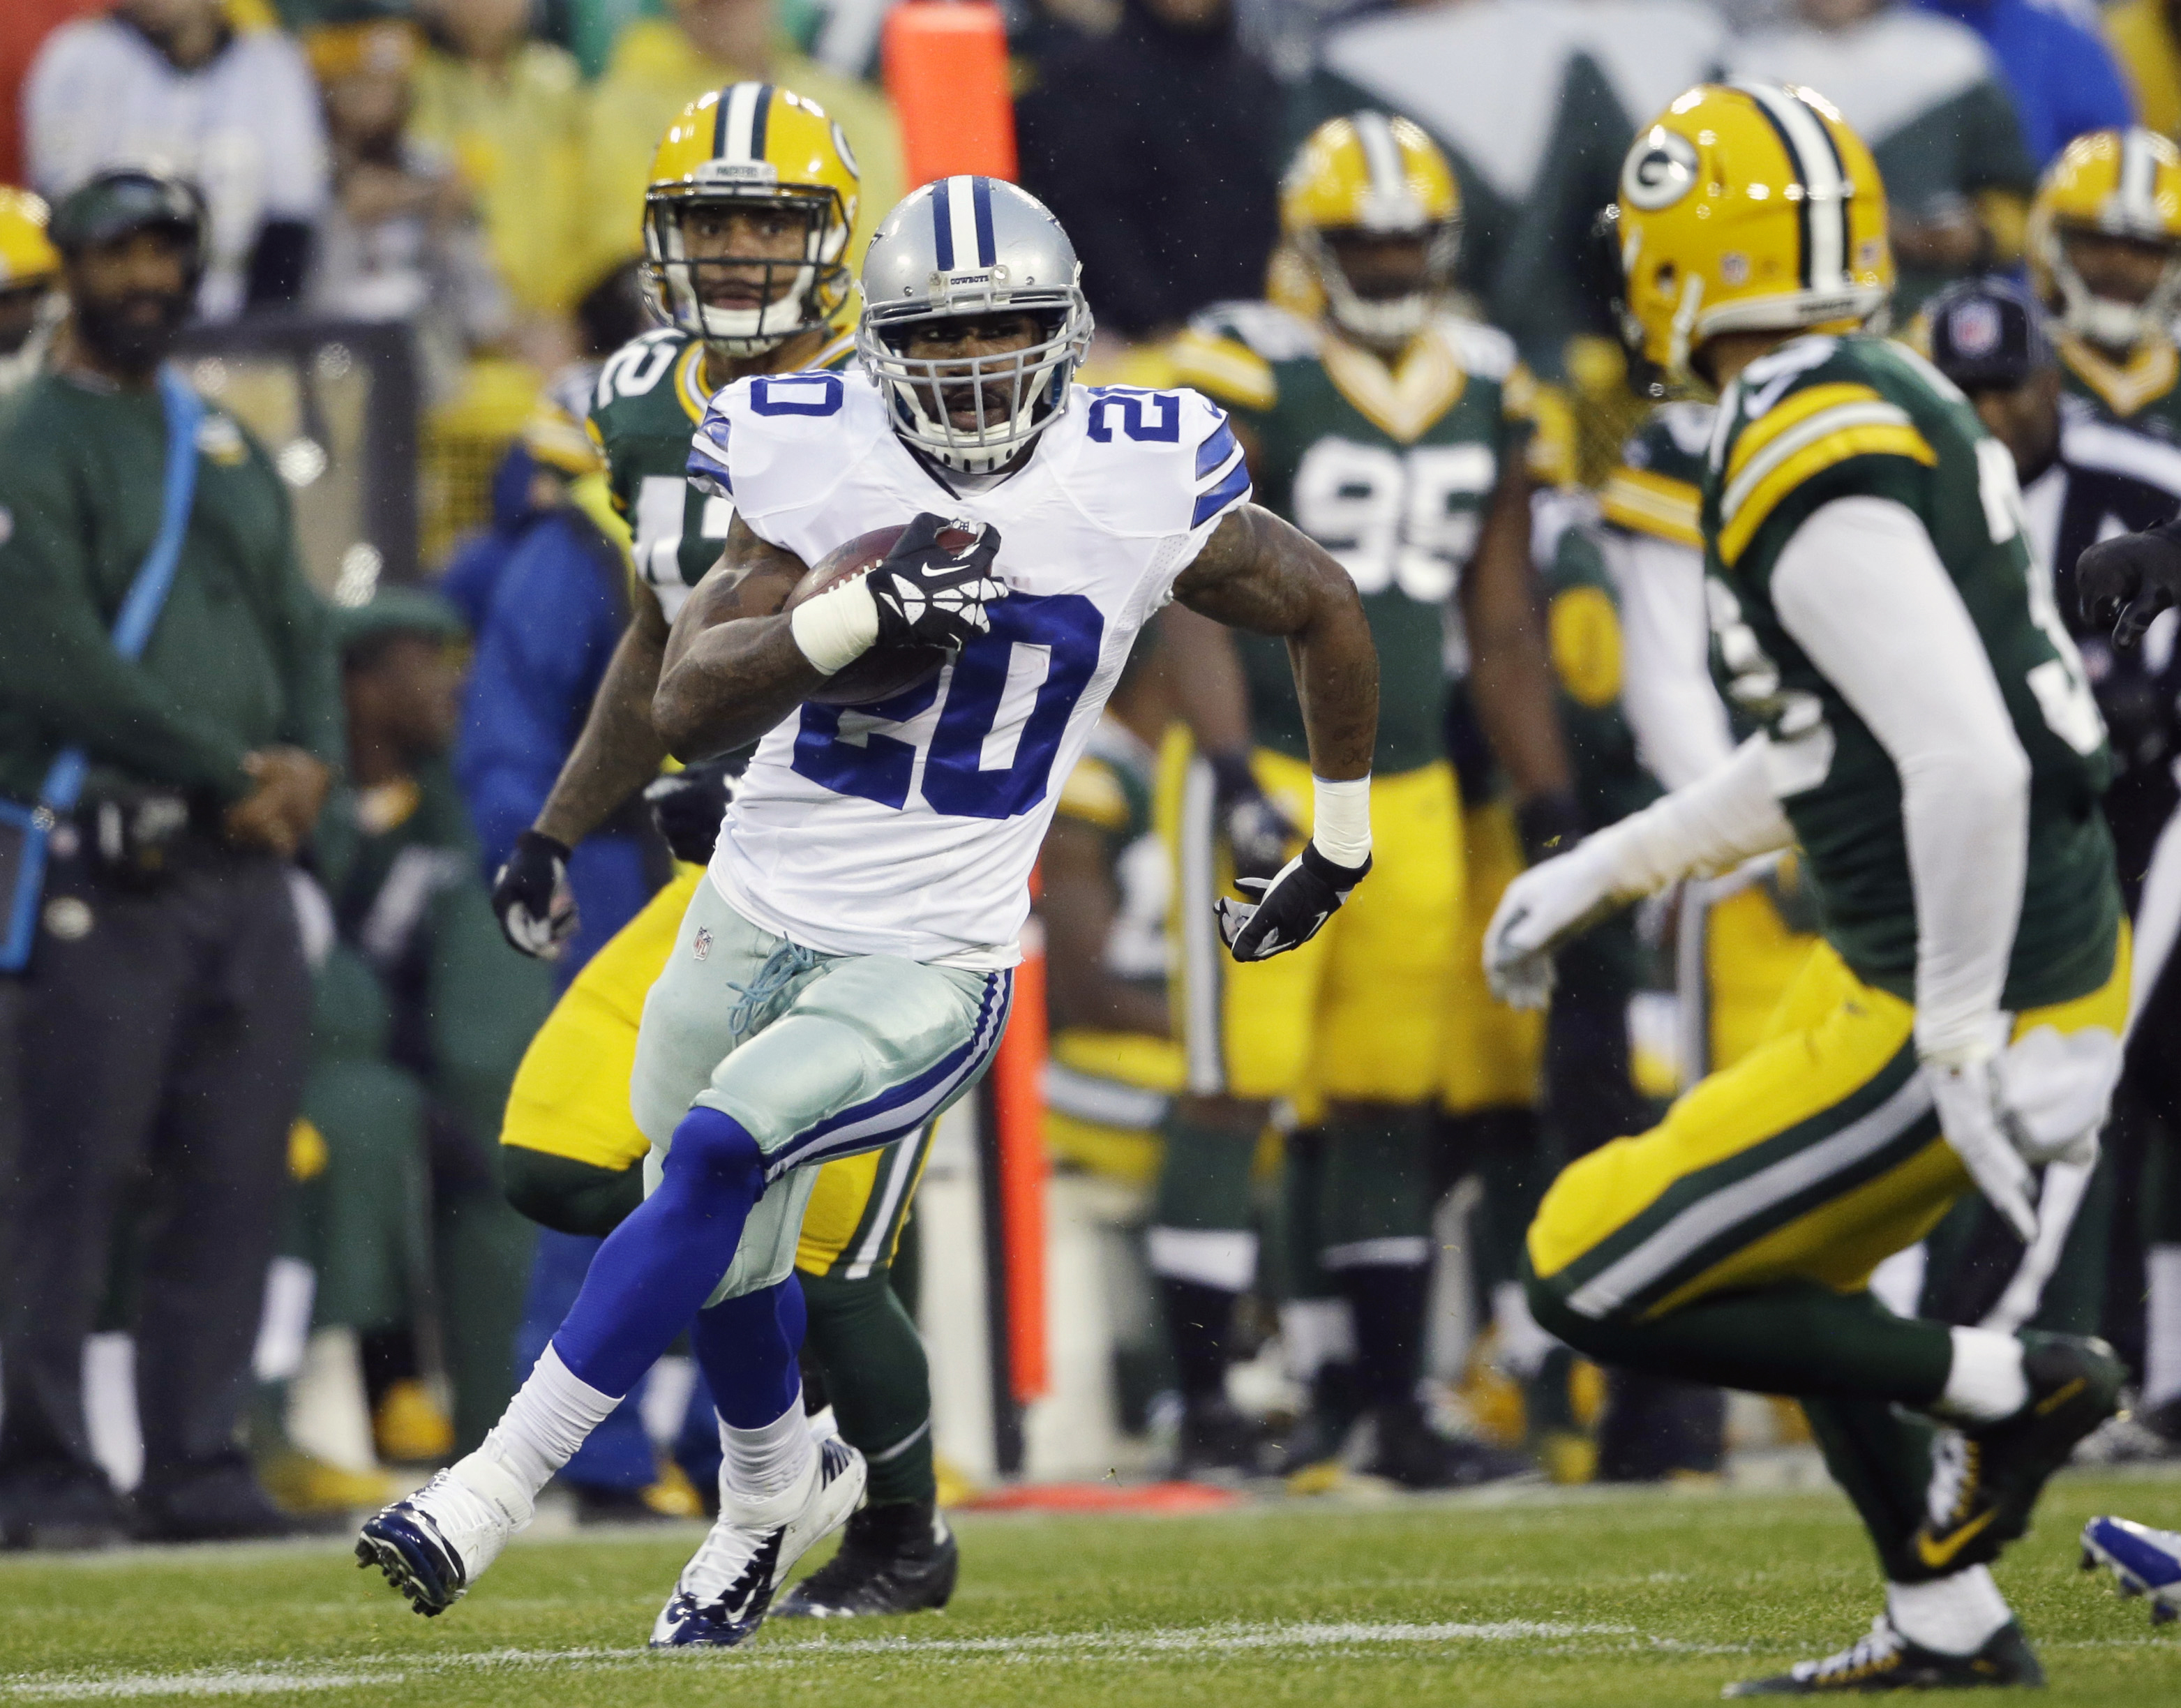 Dallas Cowboys' Darren McFadden (20) runs during the first half of an NFL football game against the Green Bay Packers, Sunday, Dec. 13, 2015, in Green Bay, Wis. (AP Photo/Jeffrey Phelps)